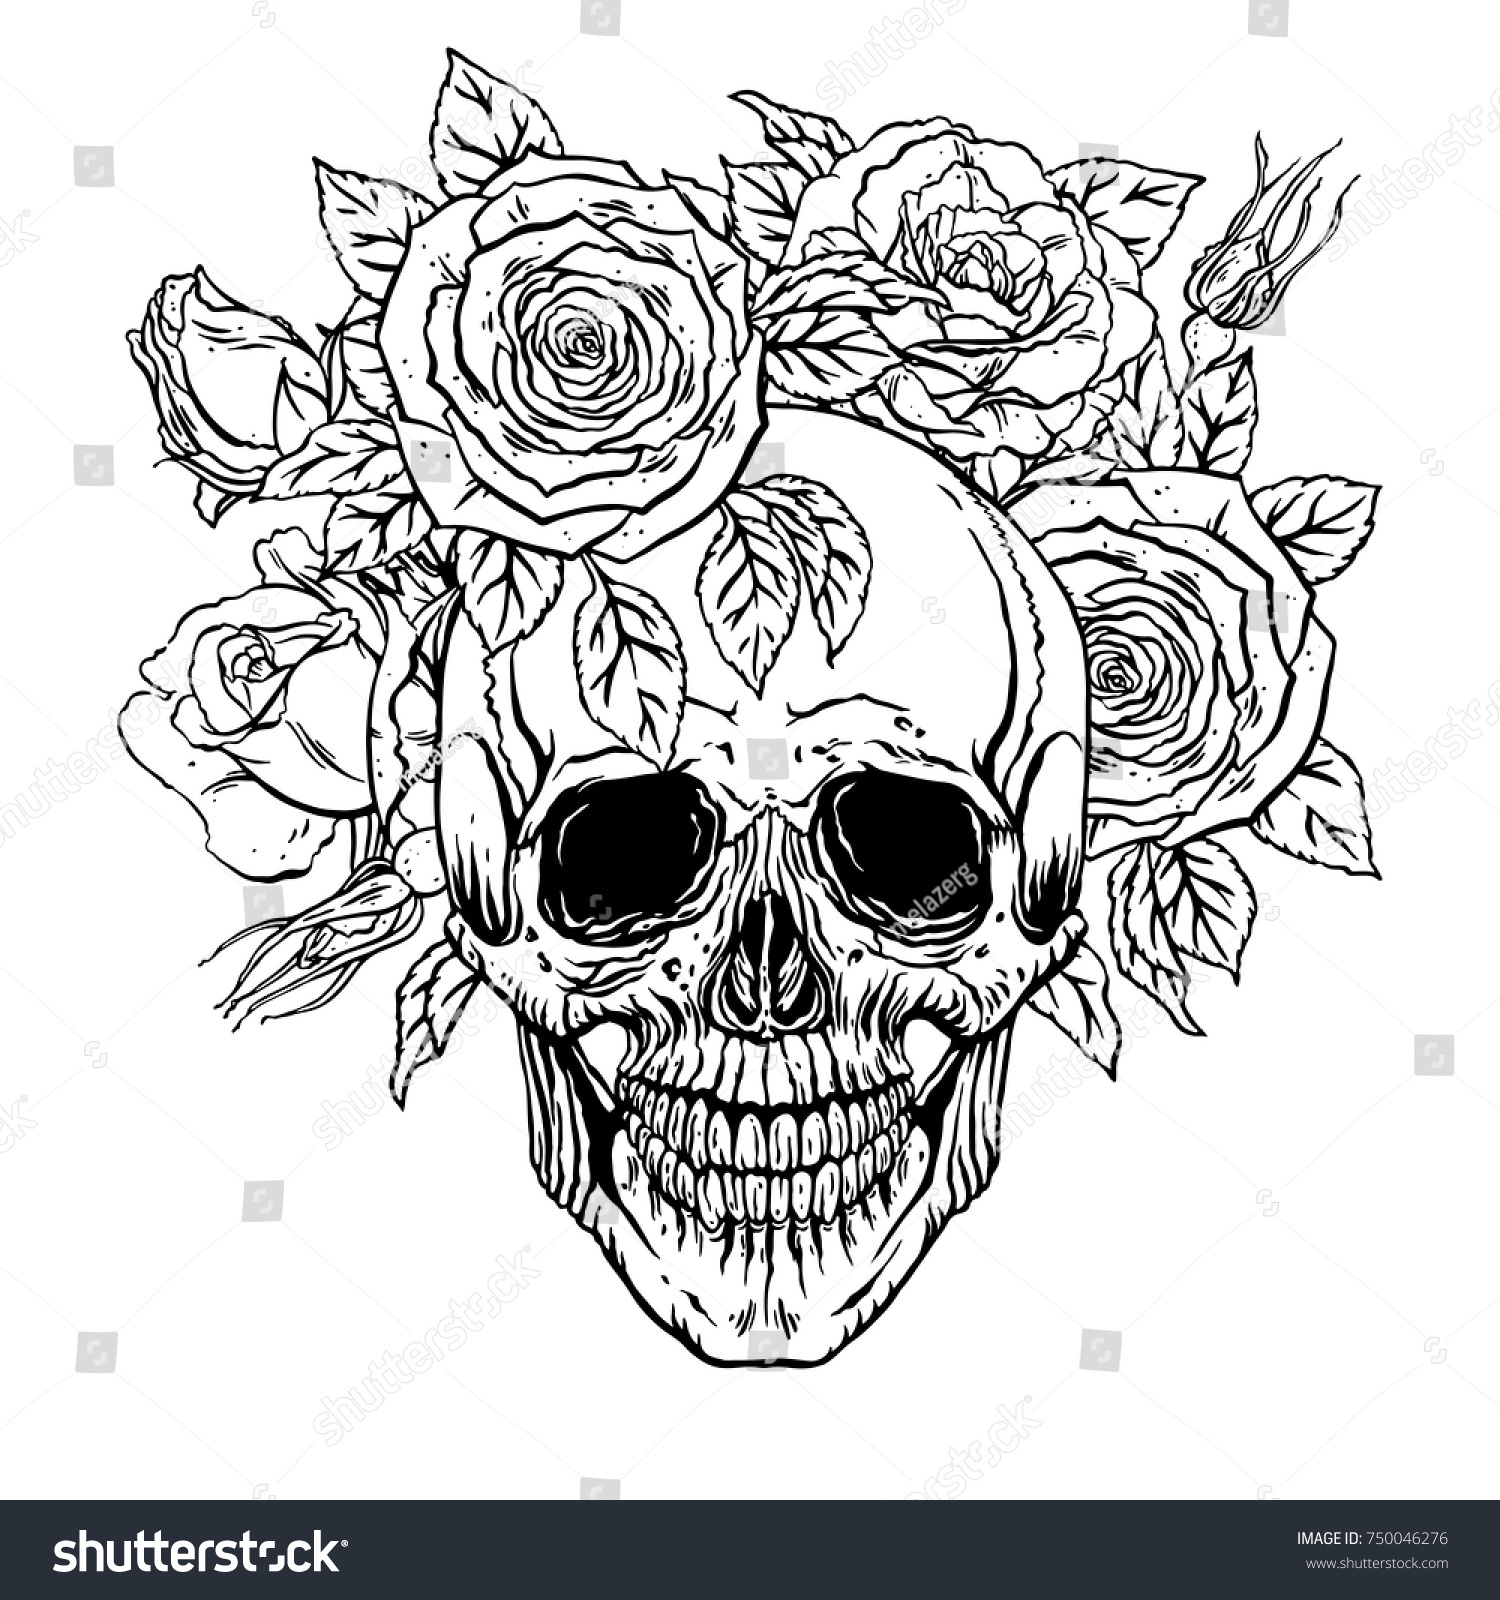 hand drawn illustration of anatomy human skull with a lower jaw and ...